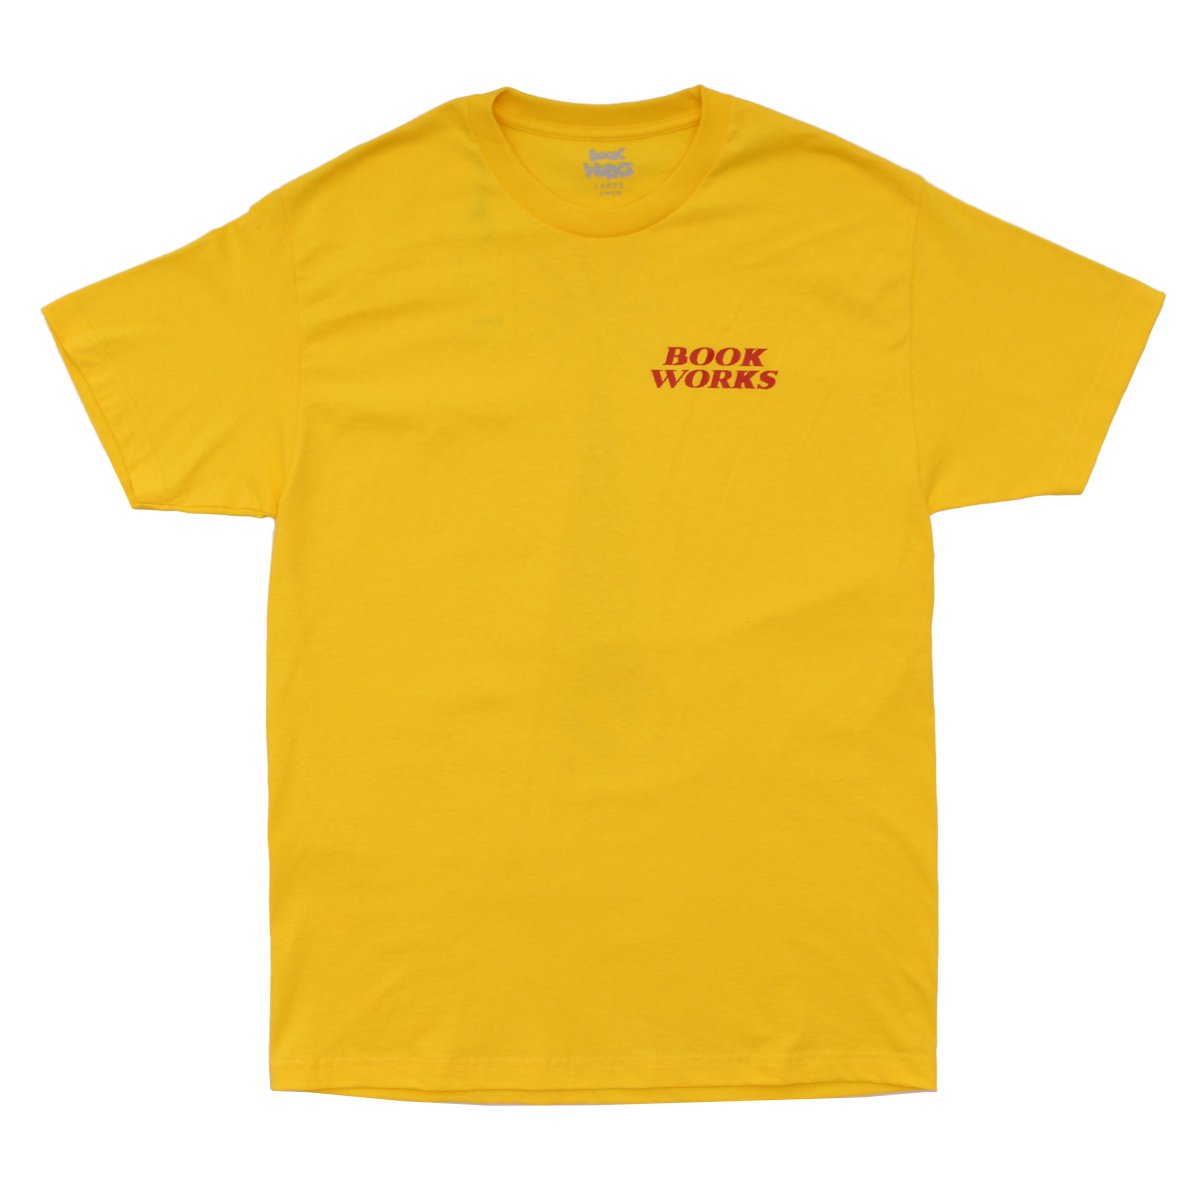 World's Most Powerful SS tee